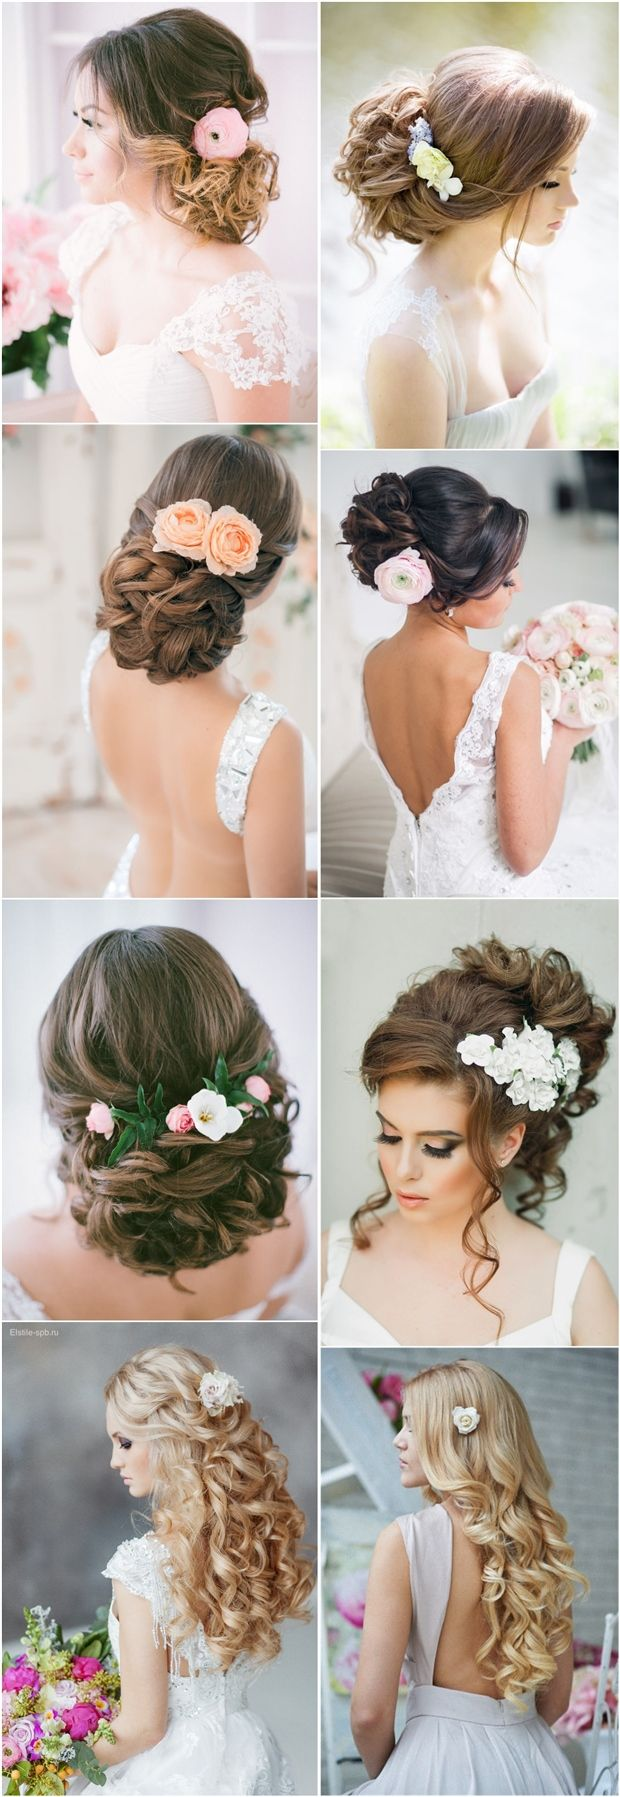 long wedding hairstyles updos with flowers | long wedding